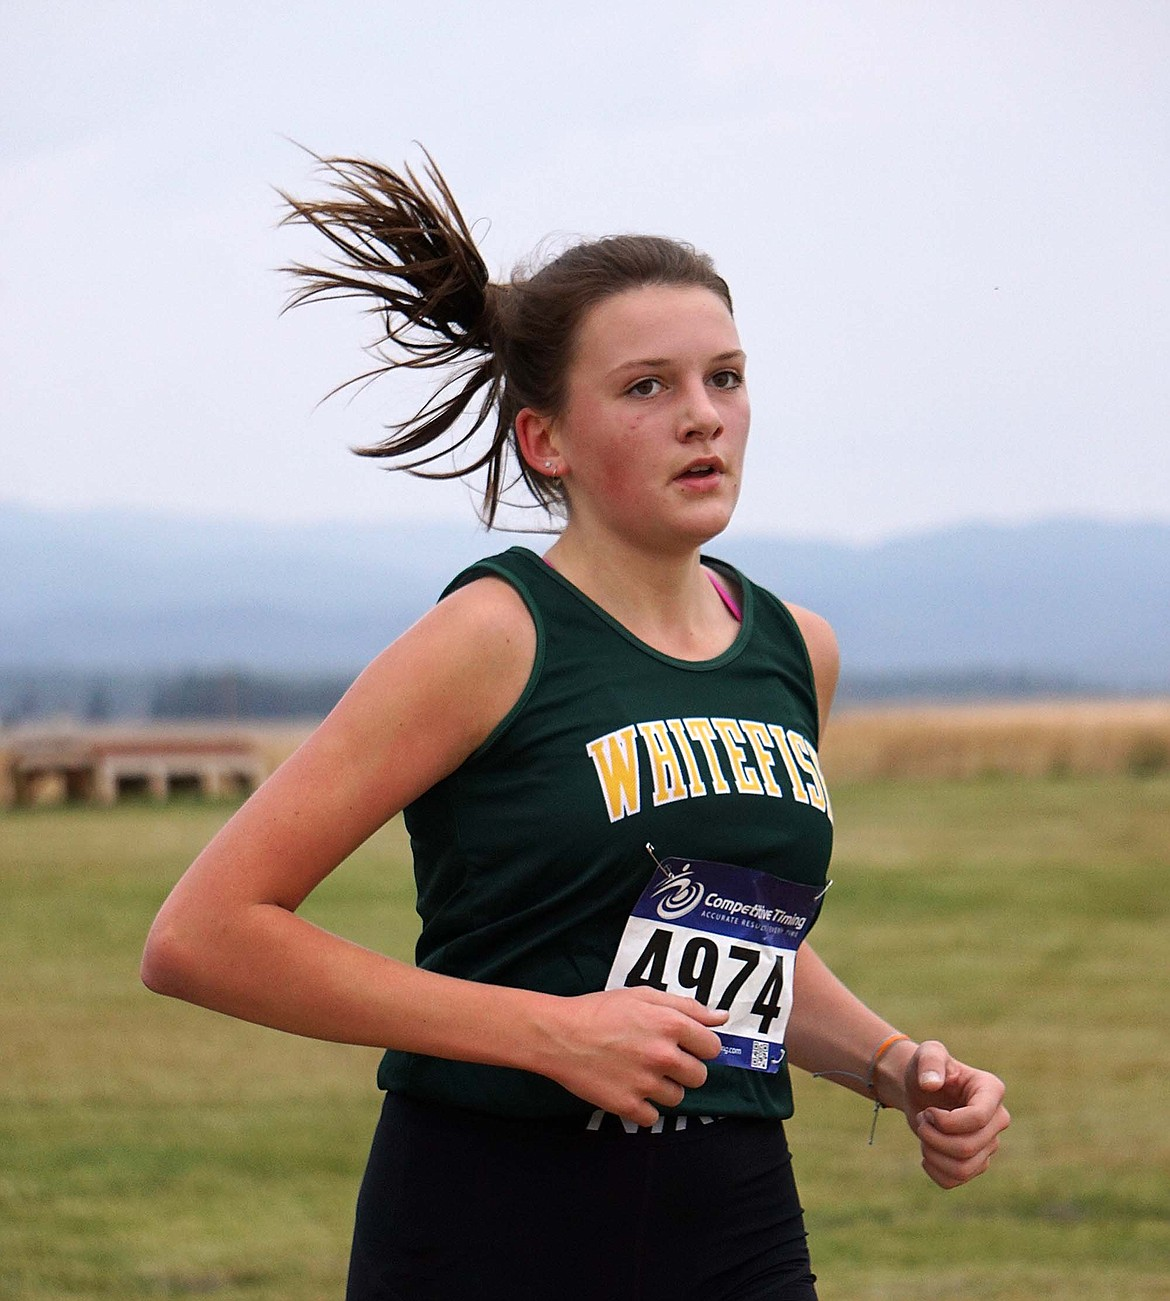 Bulldog Maggie Pulsifer finished with a time of 22:43.09 during the cross country meet Saturday at Rebecca Farm. (Matt Weller photo)